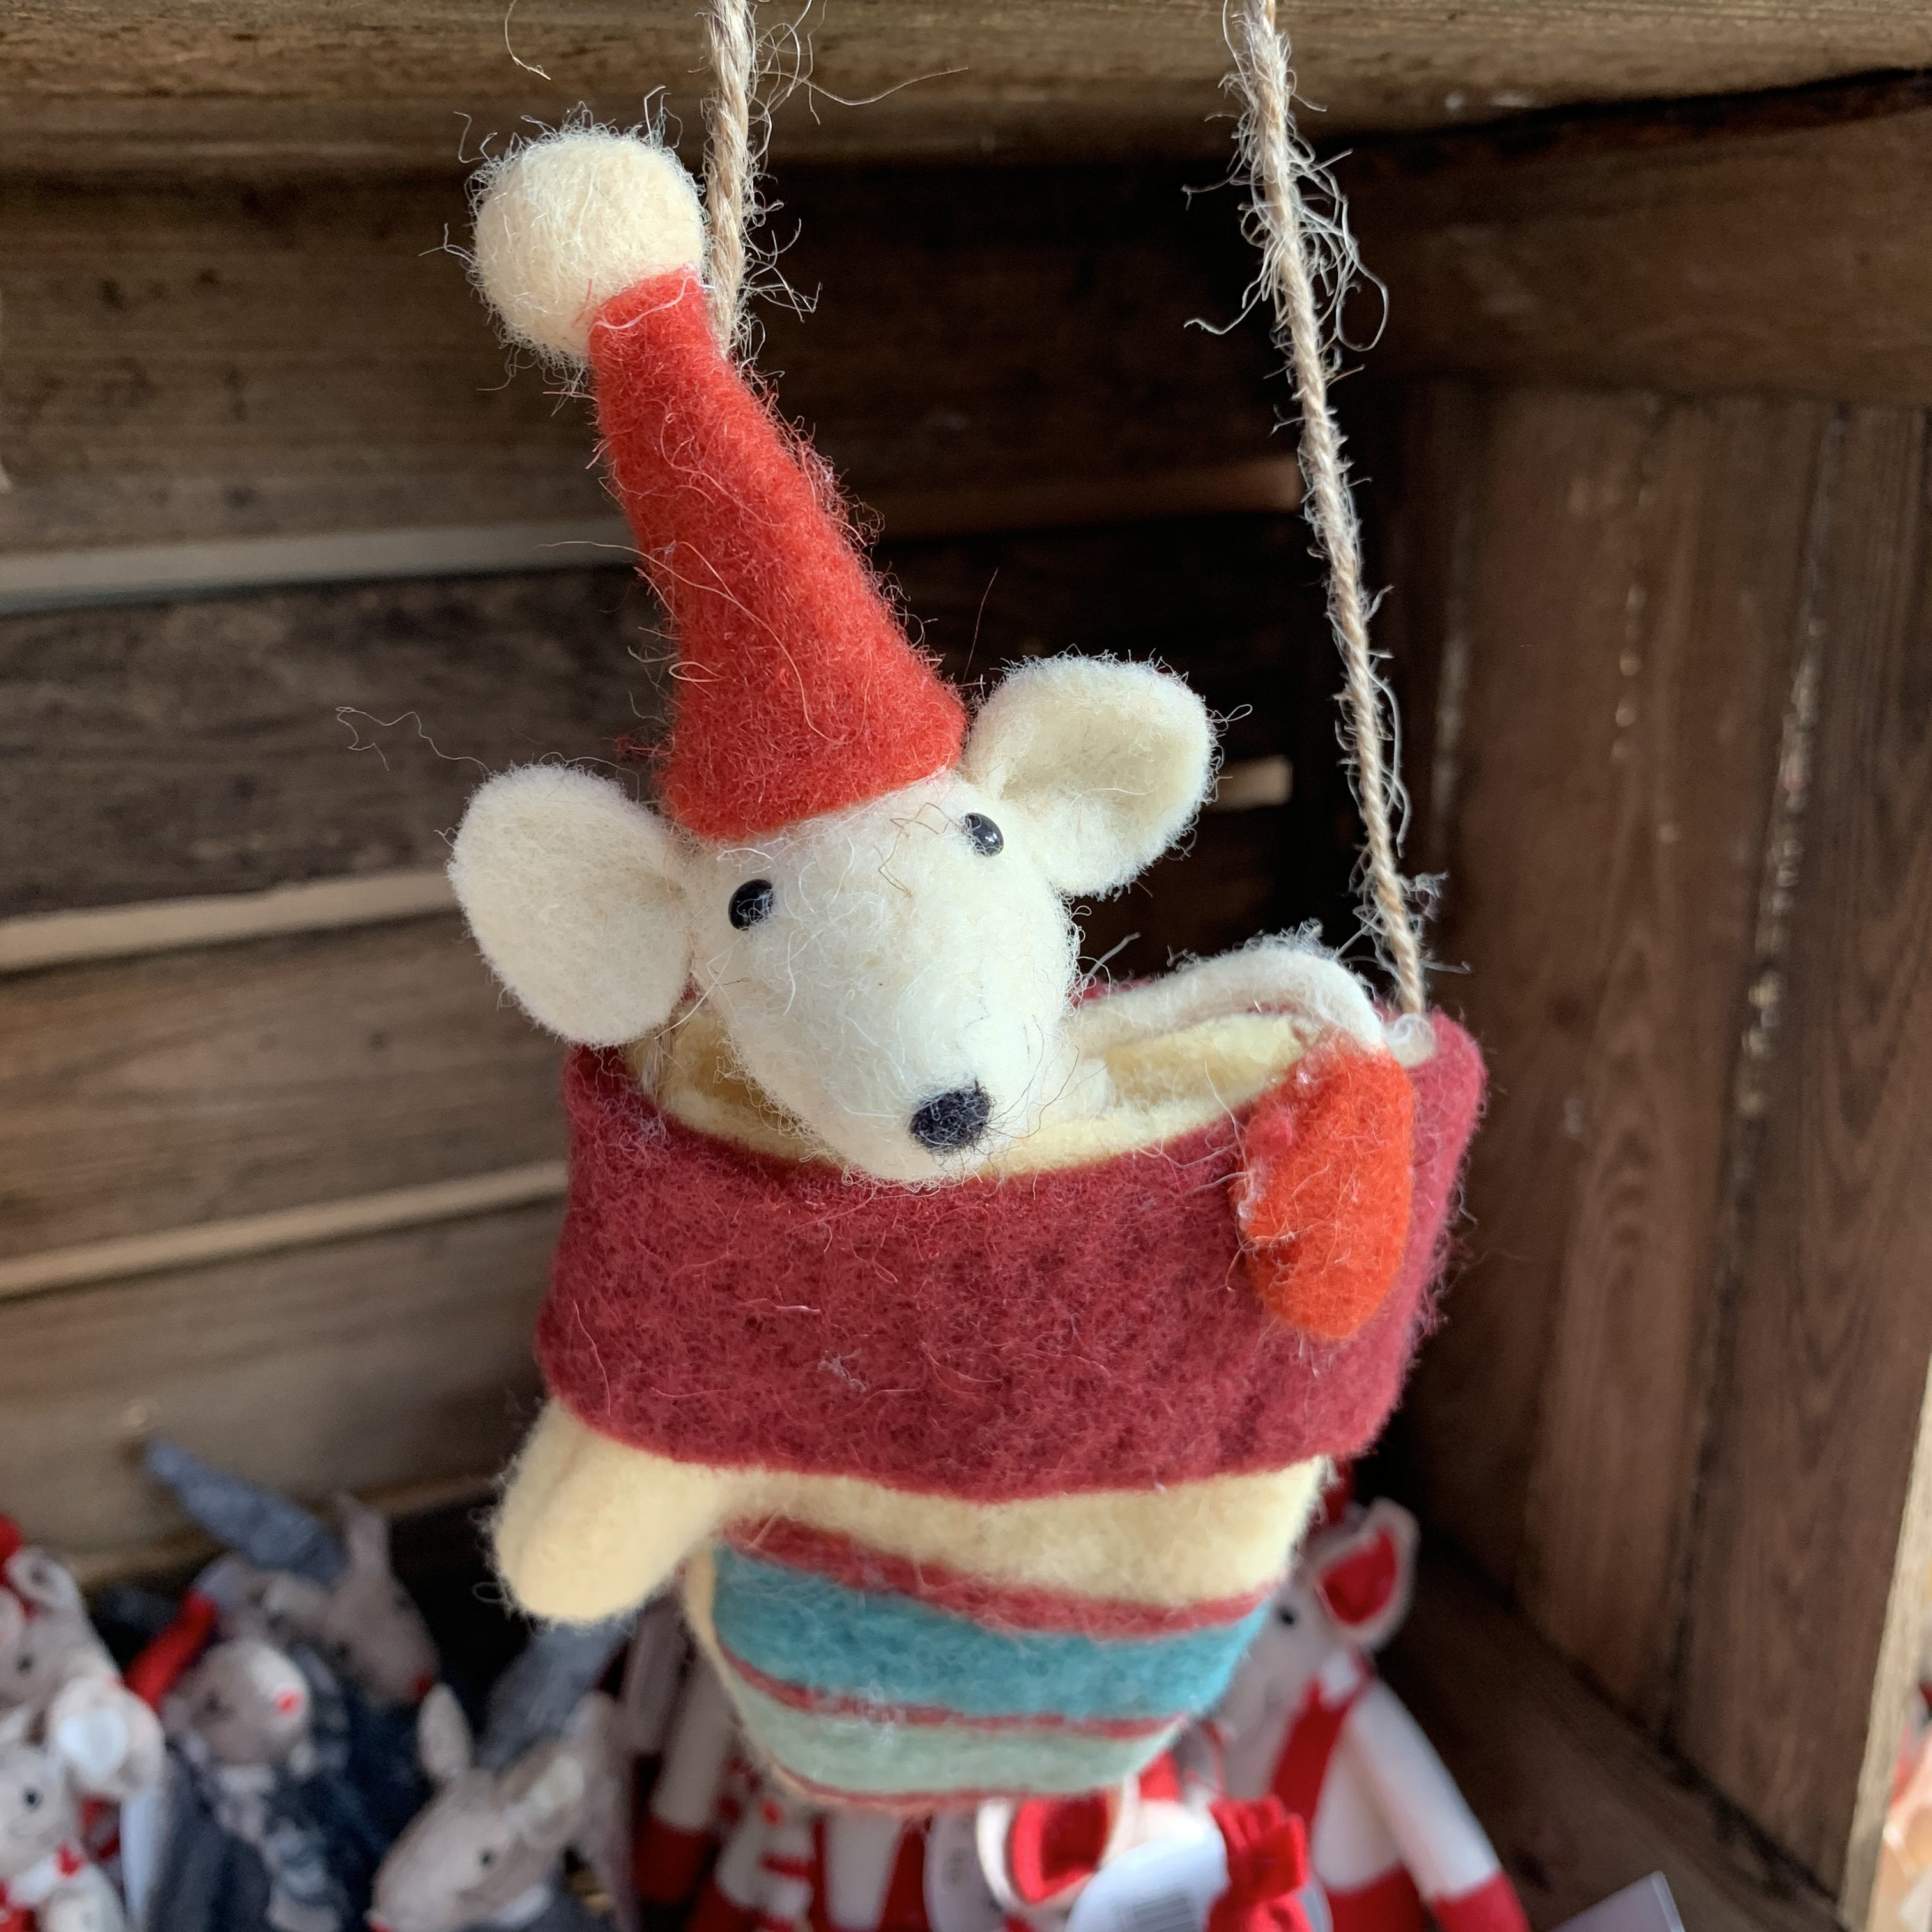 HANGING MOUSE IN GLOVE